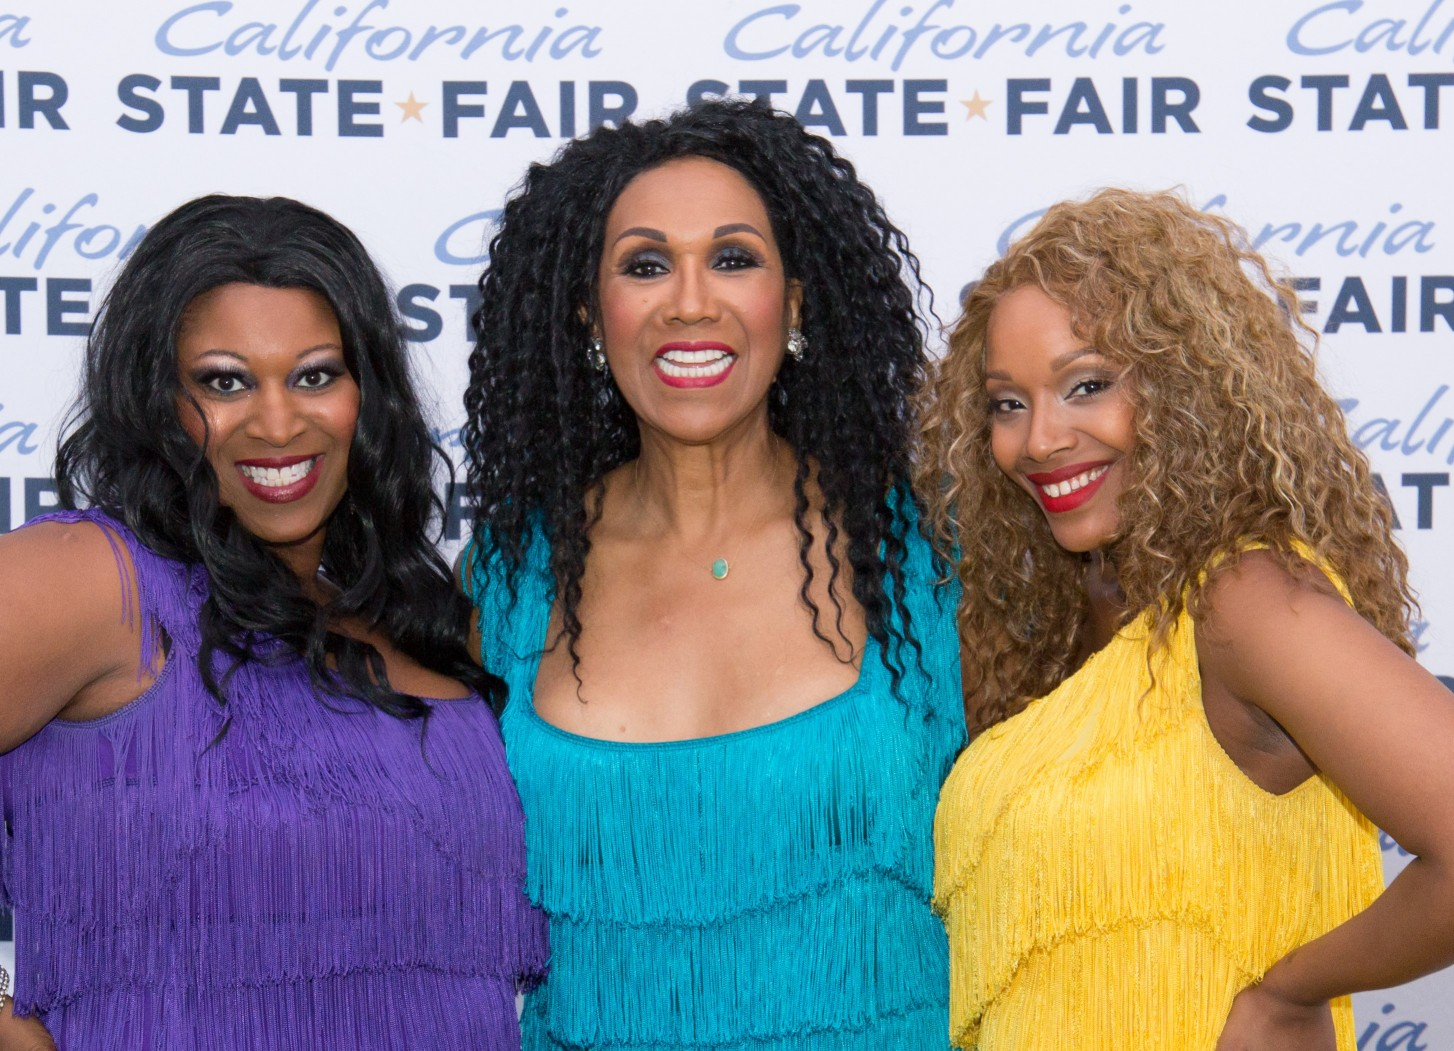 The Pointer Sisters, 2016 (Photo courtesy of Pointersisters.com)